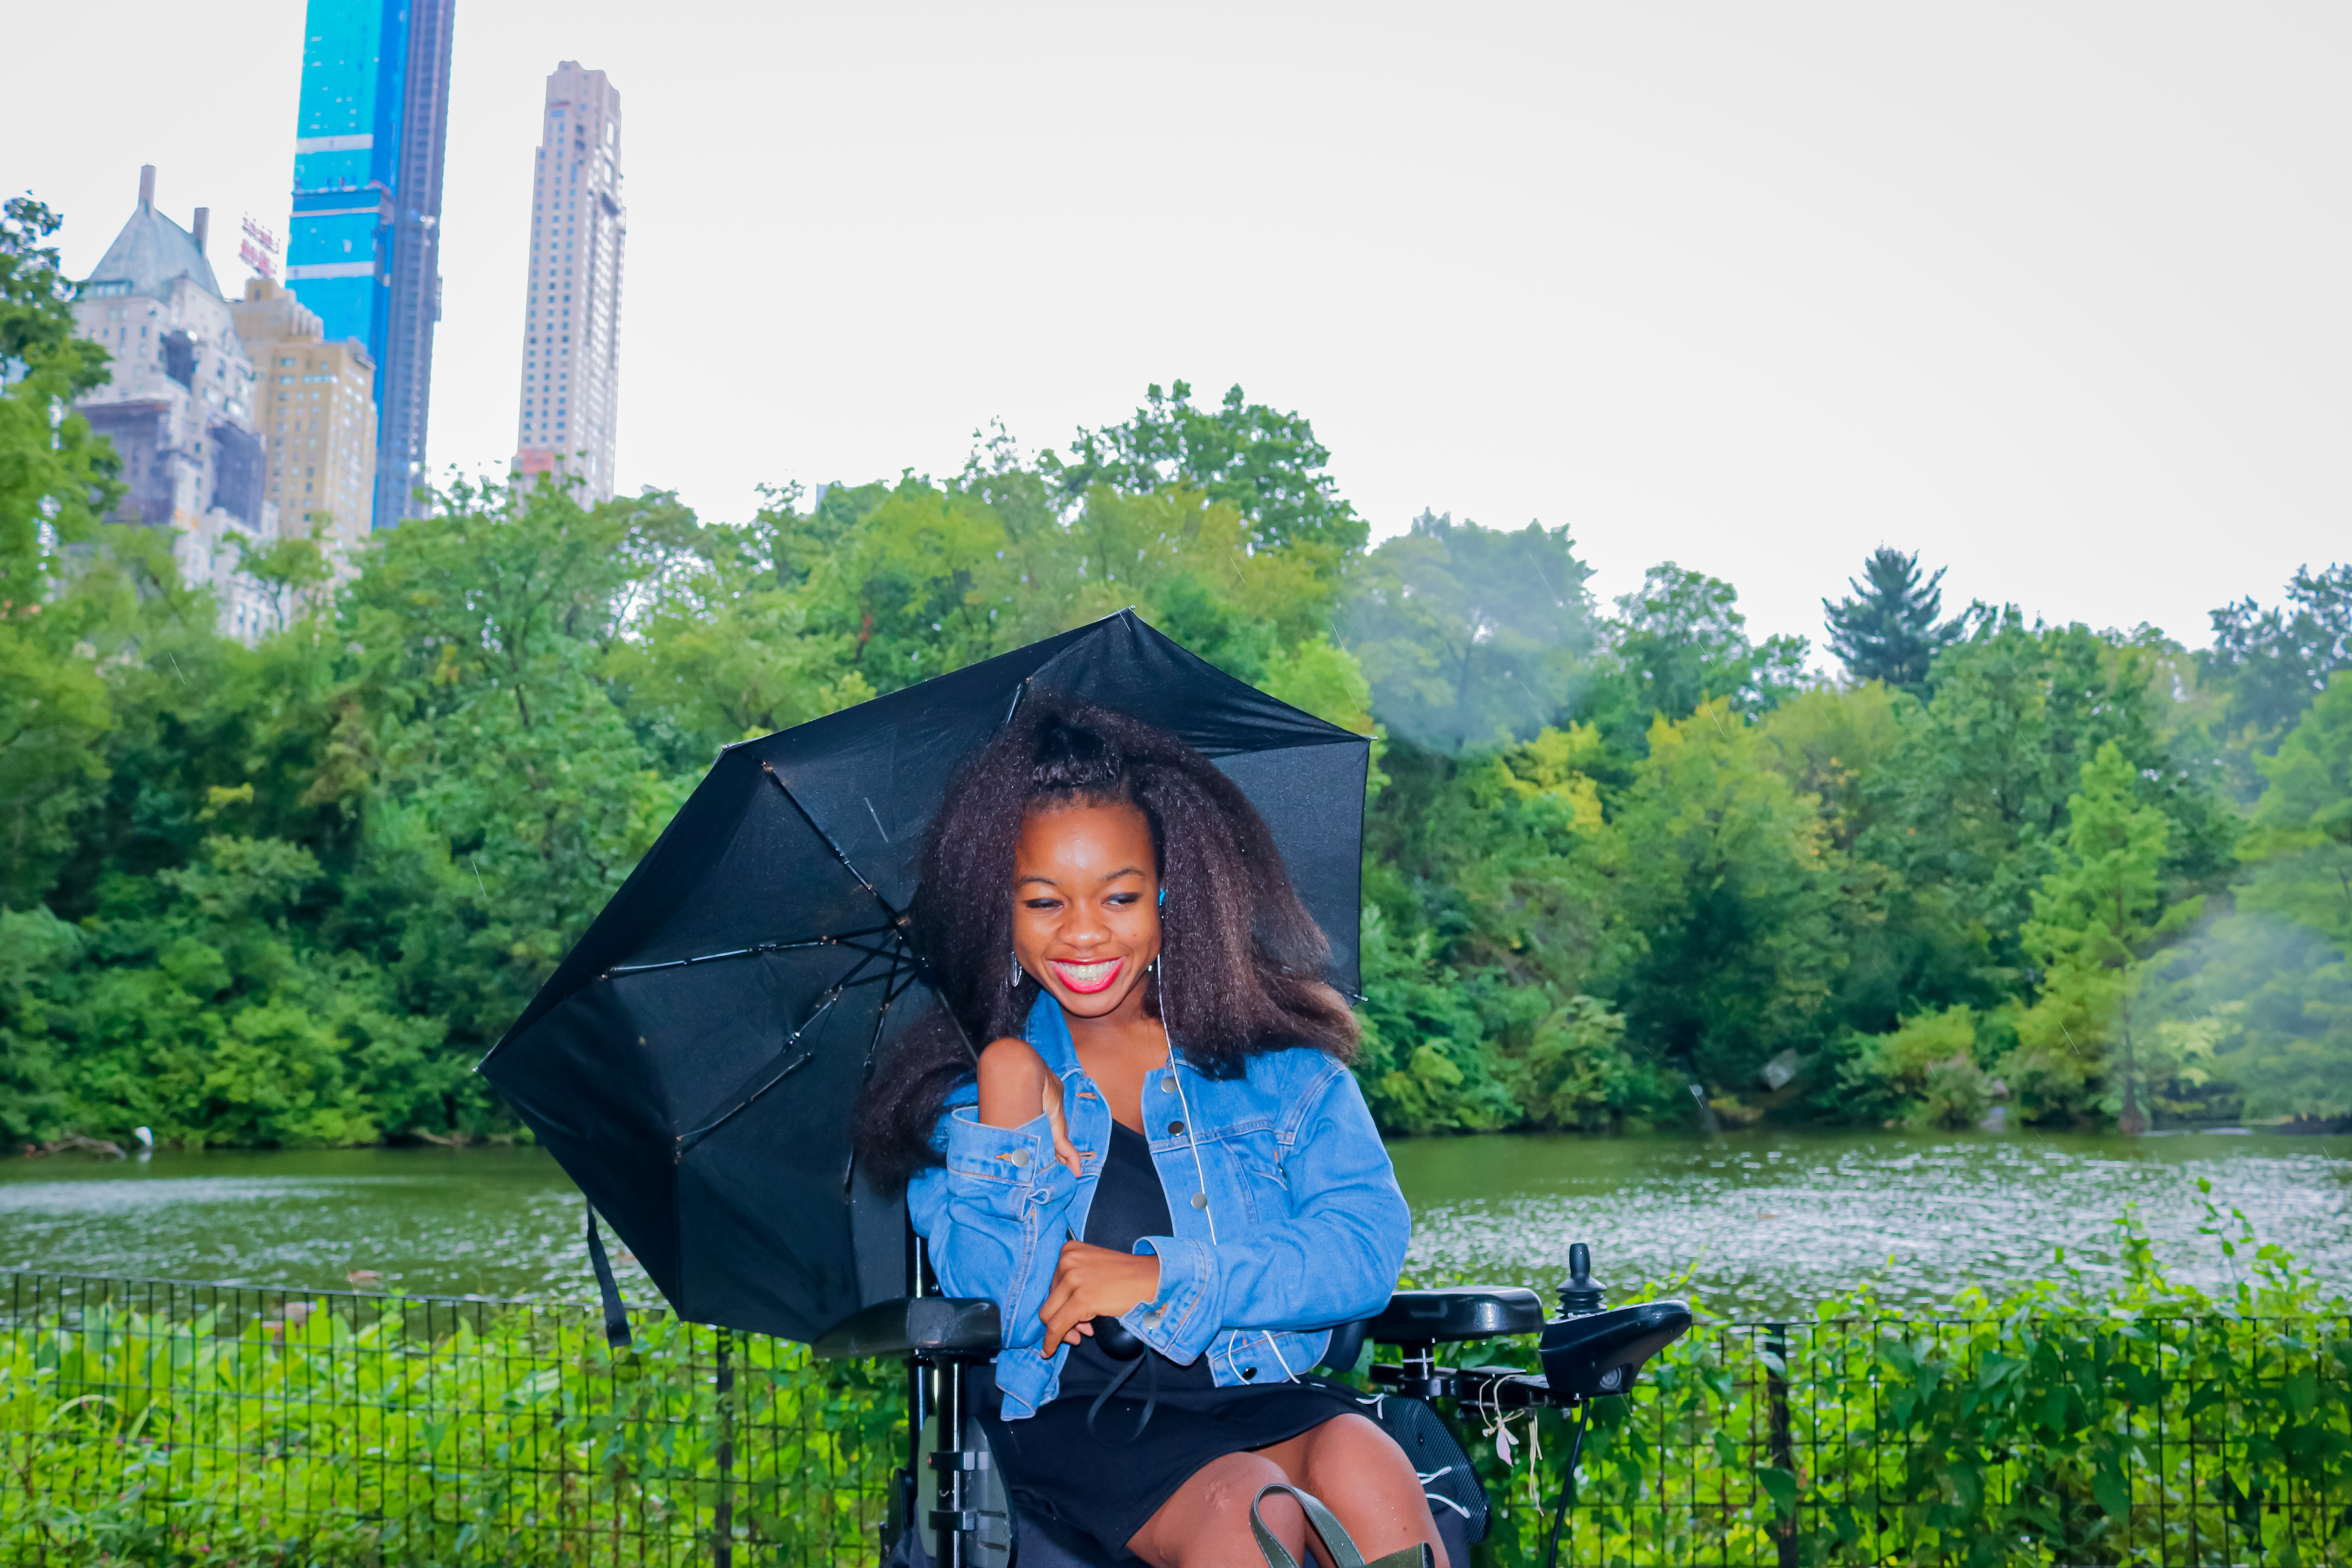 Rachy smiling in Central park